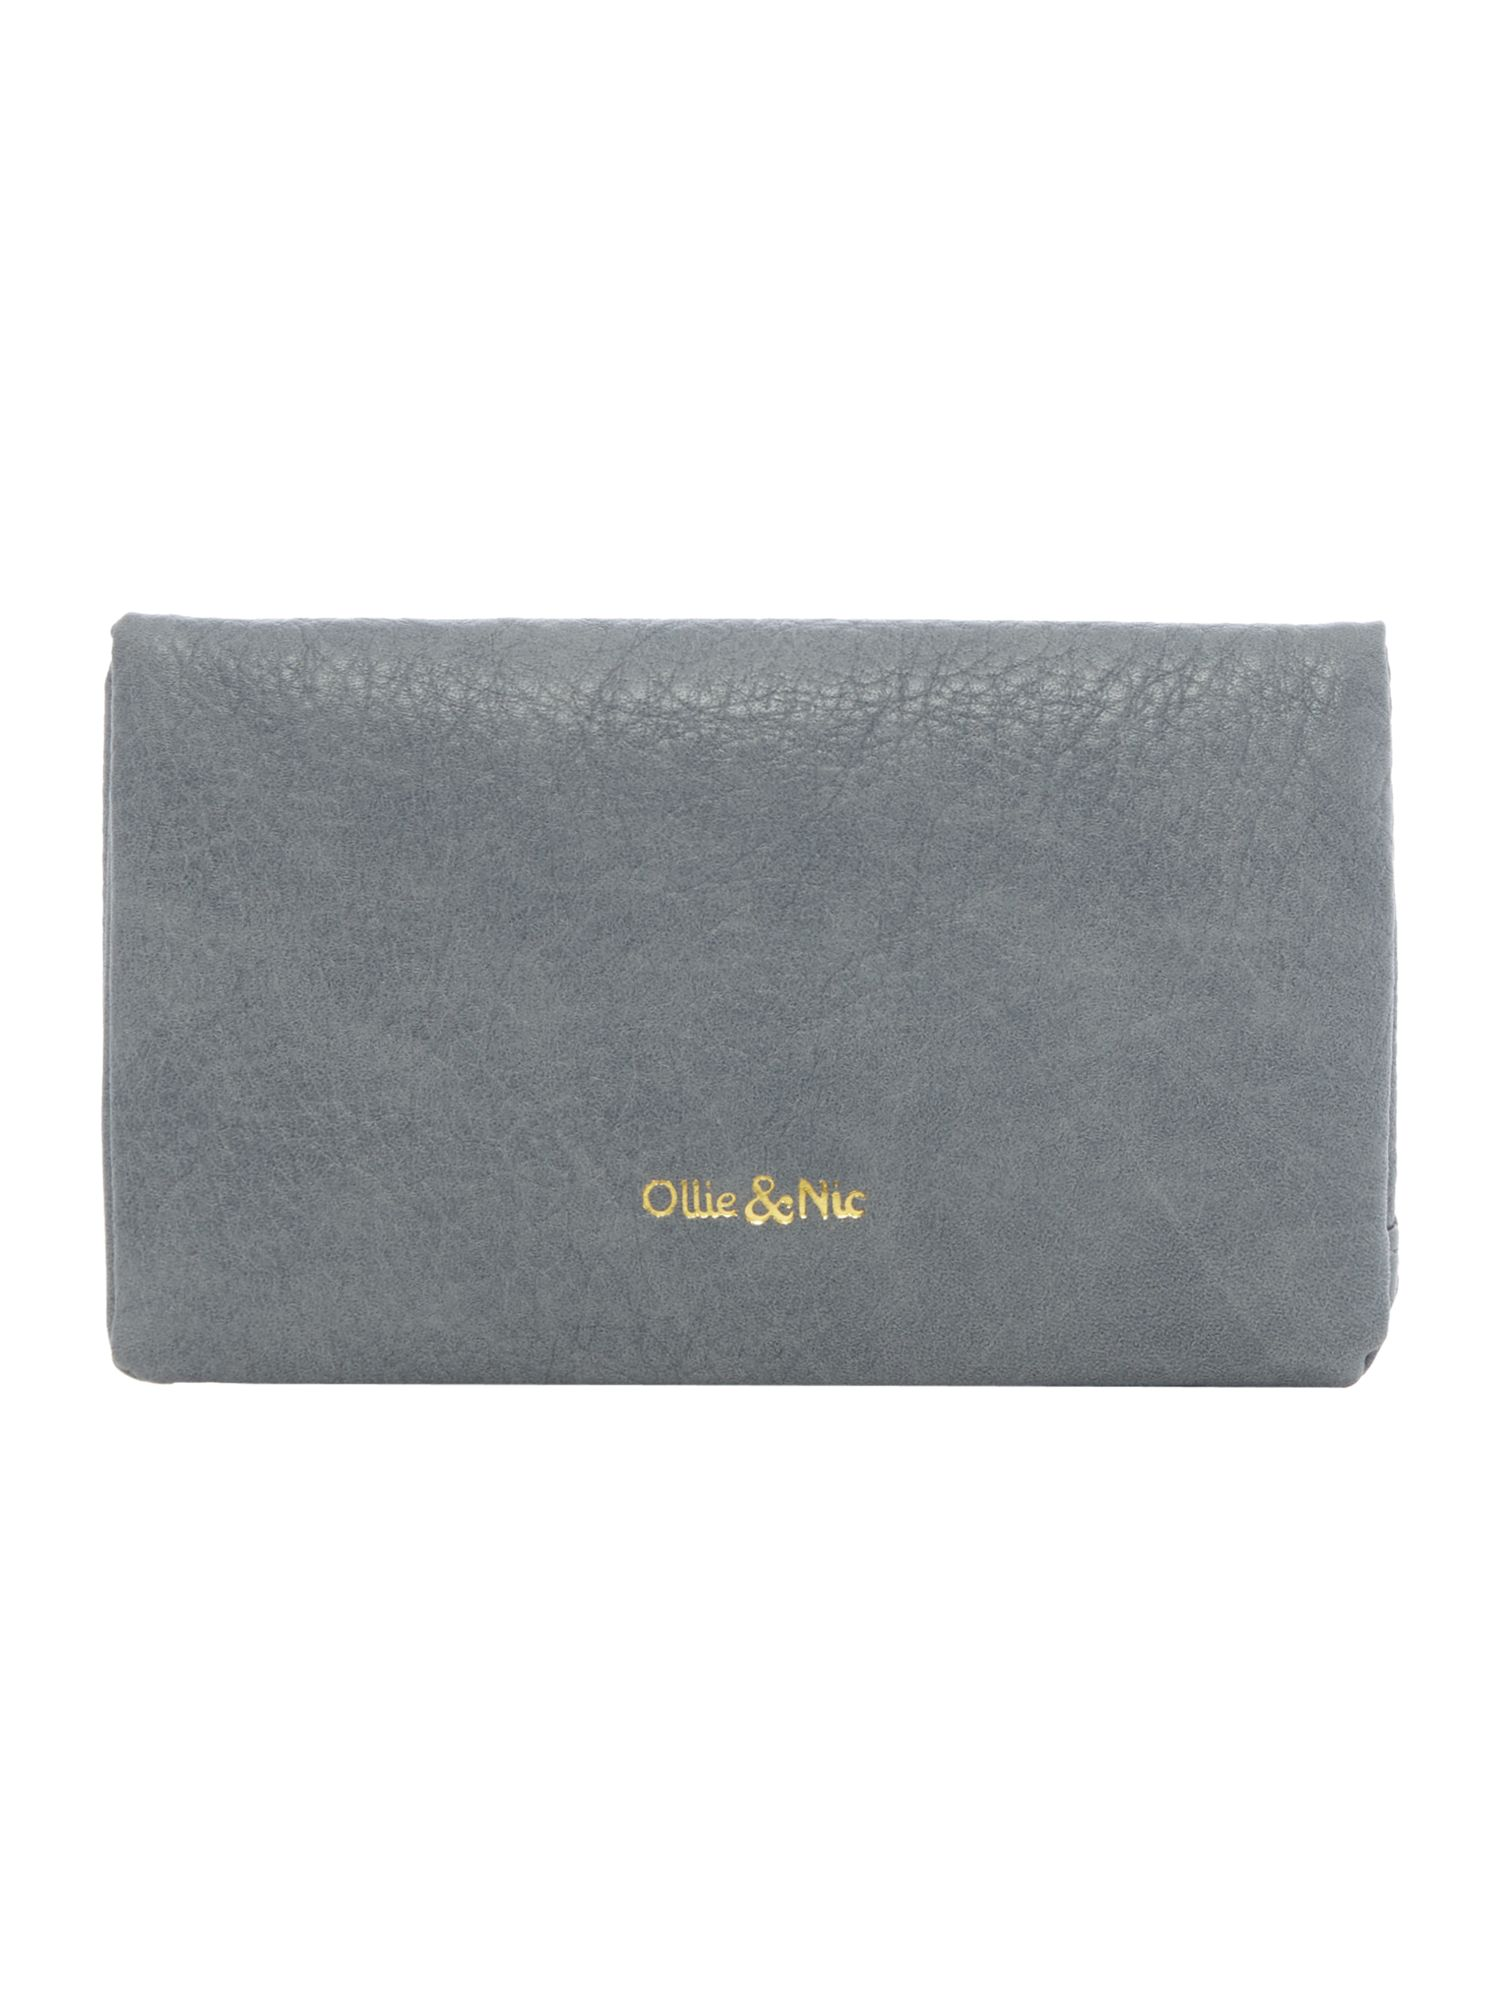 Ollie & Nic Rosa small ziparound purse, Grey